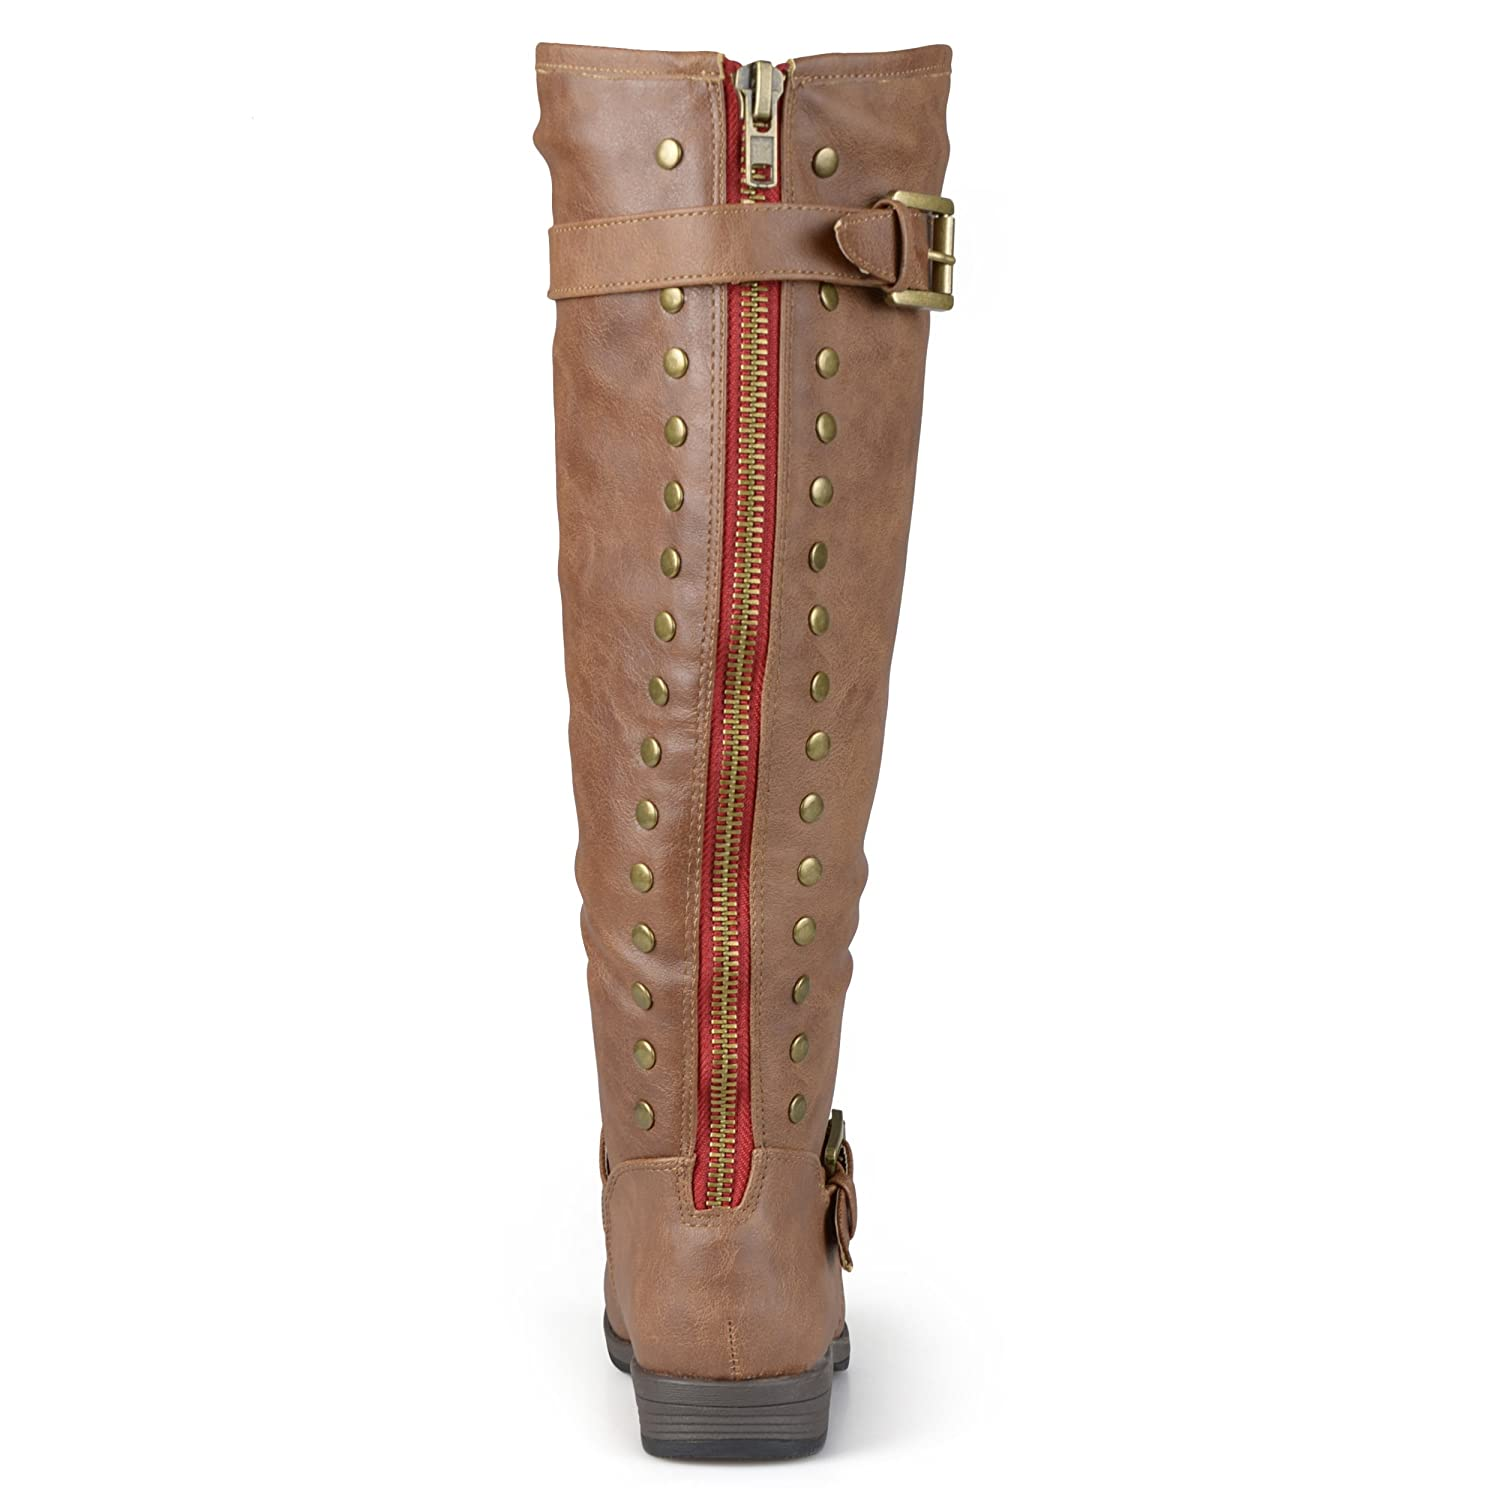 Journee Collection Womens Regular Sized, Wide-Calf and Extra Wide-Calf Studded Knee-High Riding Boot B01N3MR3EK 8.5 Extra Wide|Chestnut